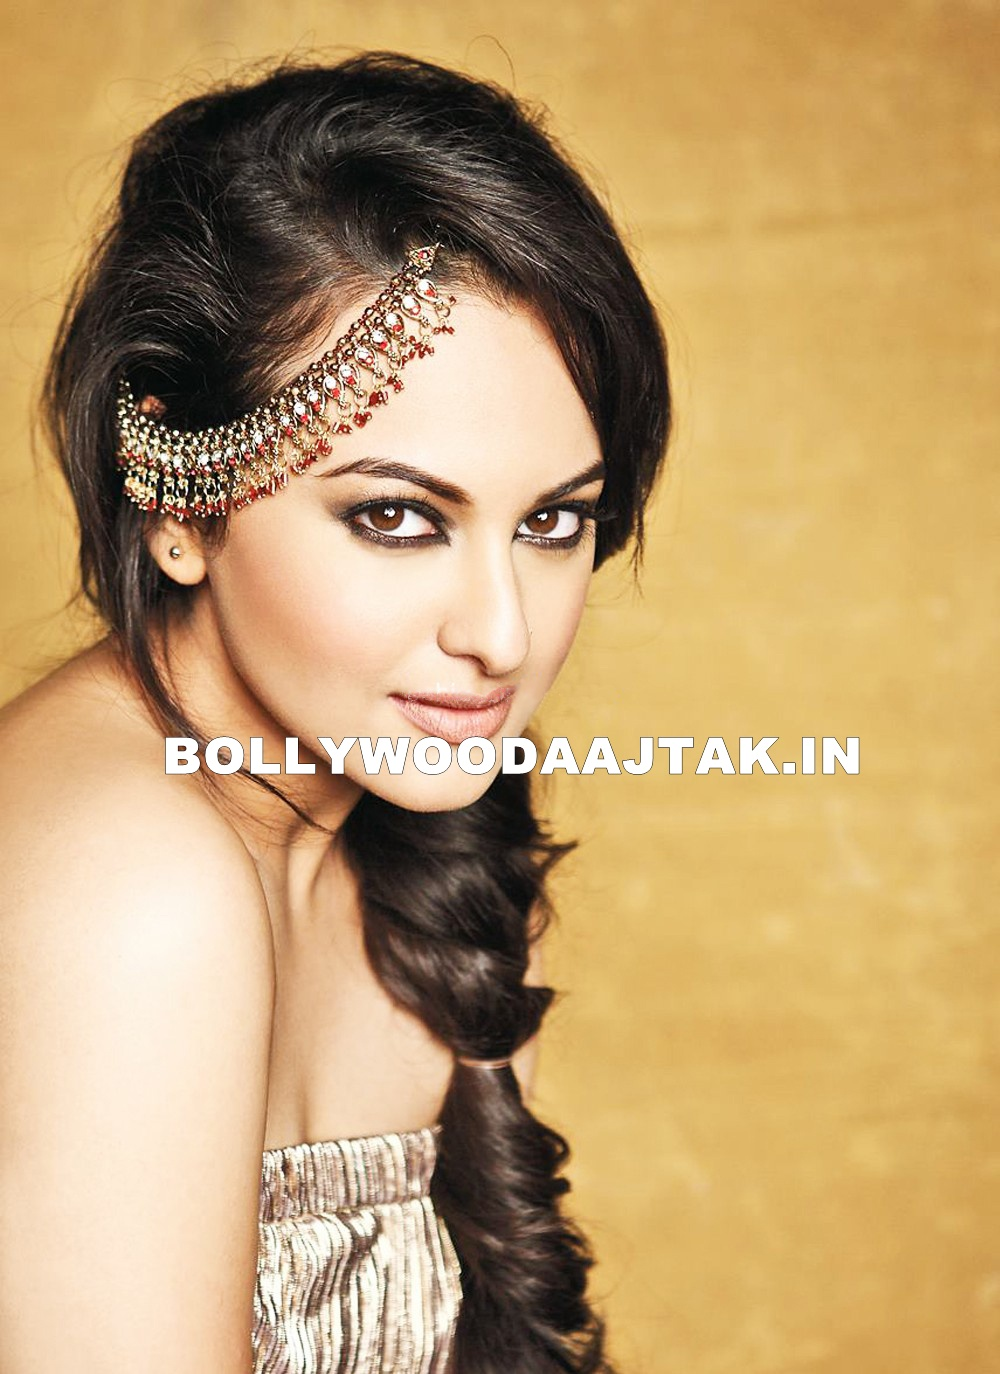 Sonakshi Sinha latest pic1 - Sonakshi Sinha Latest Unseen Hot Photoshoot HQ Images